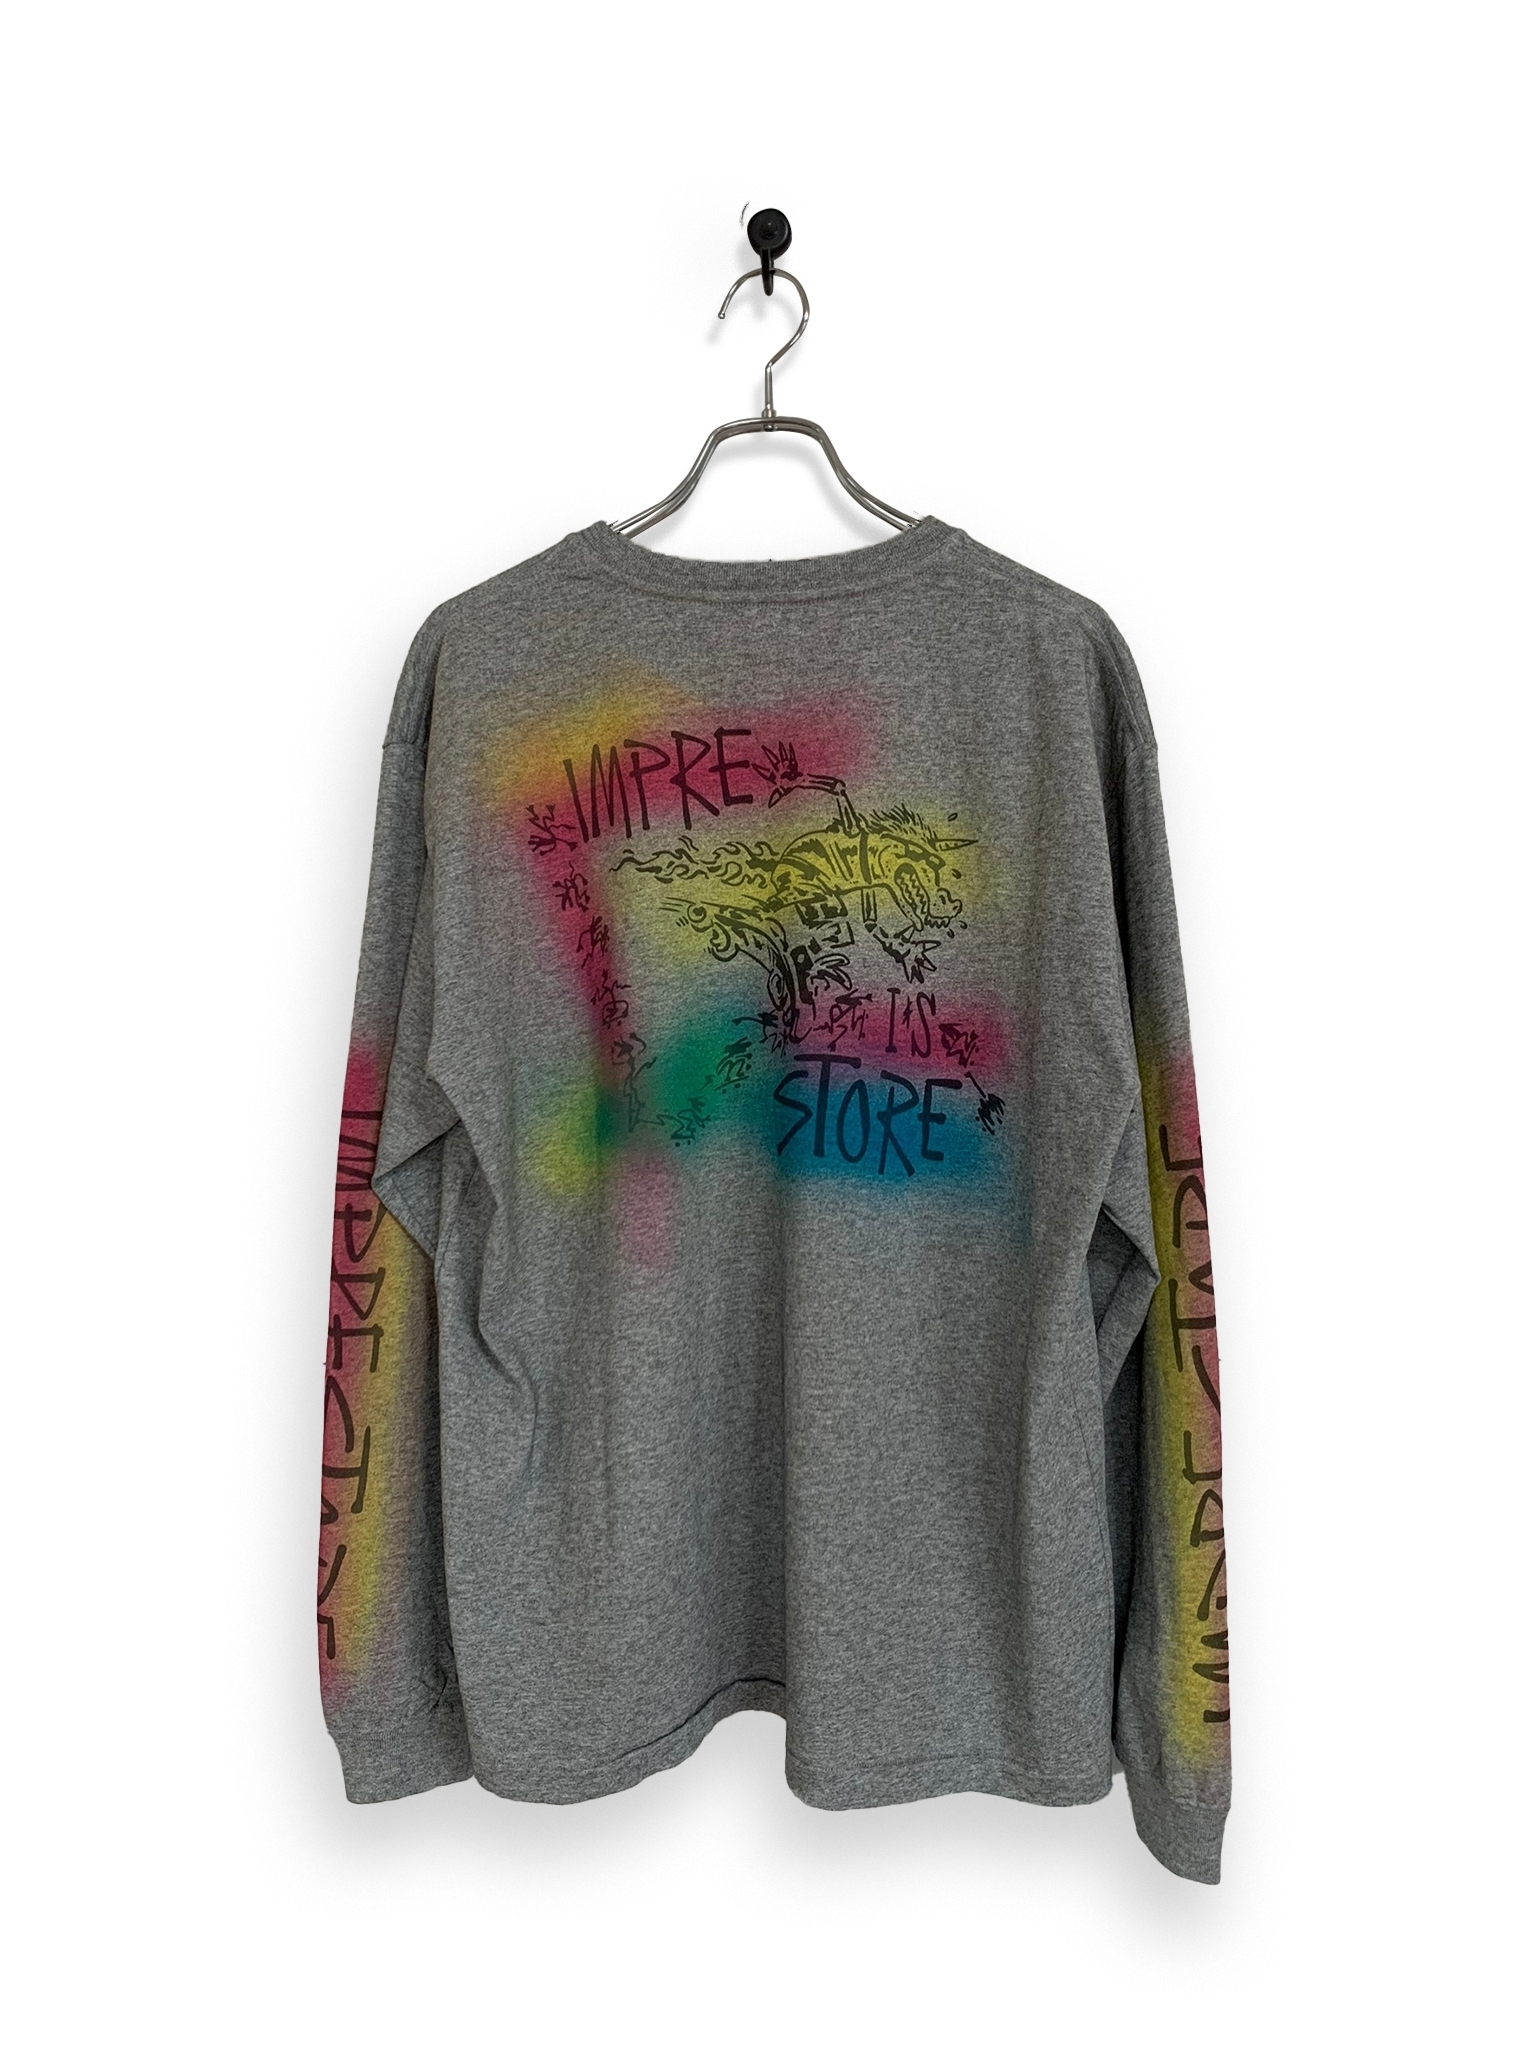 Original Long Sleeve-T / air brush / gray